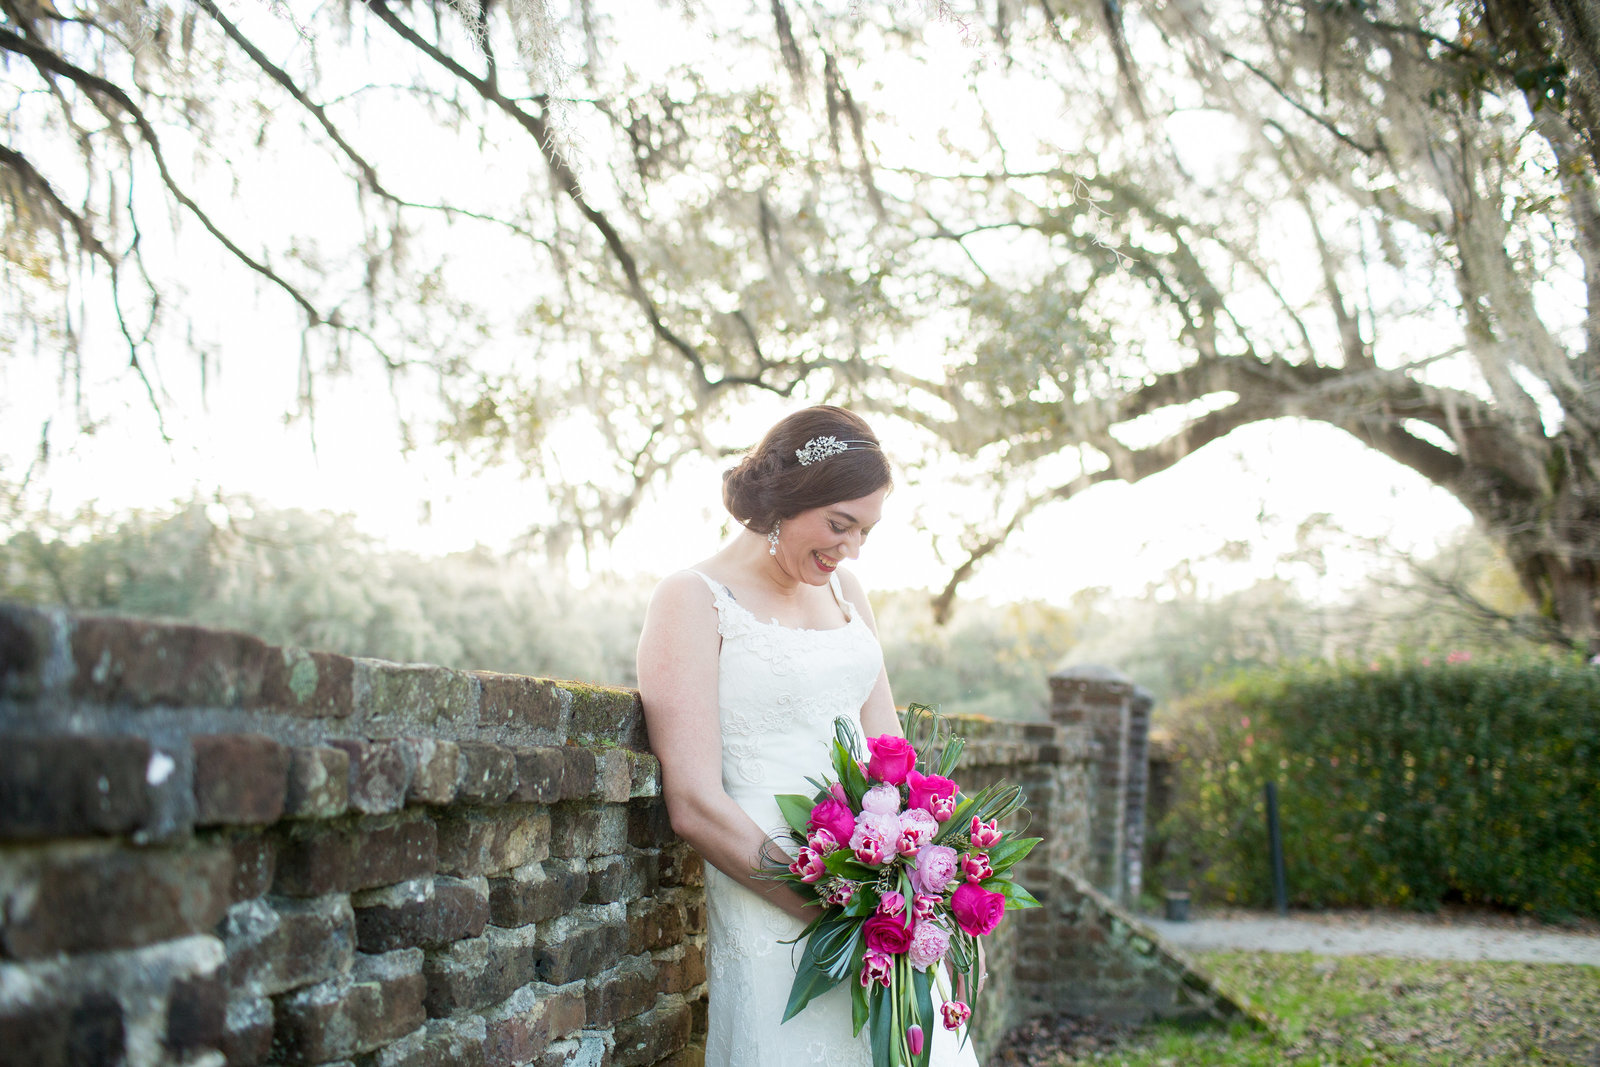 Betsy-Burriss_Charleston-Wedding-Photographer_Jessica-Hunt-Photography_2016-70